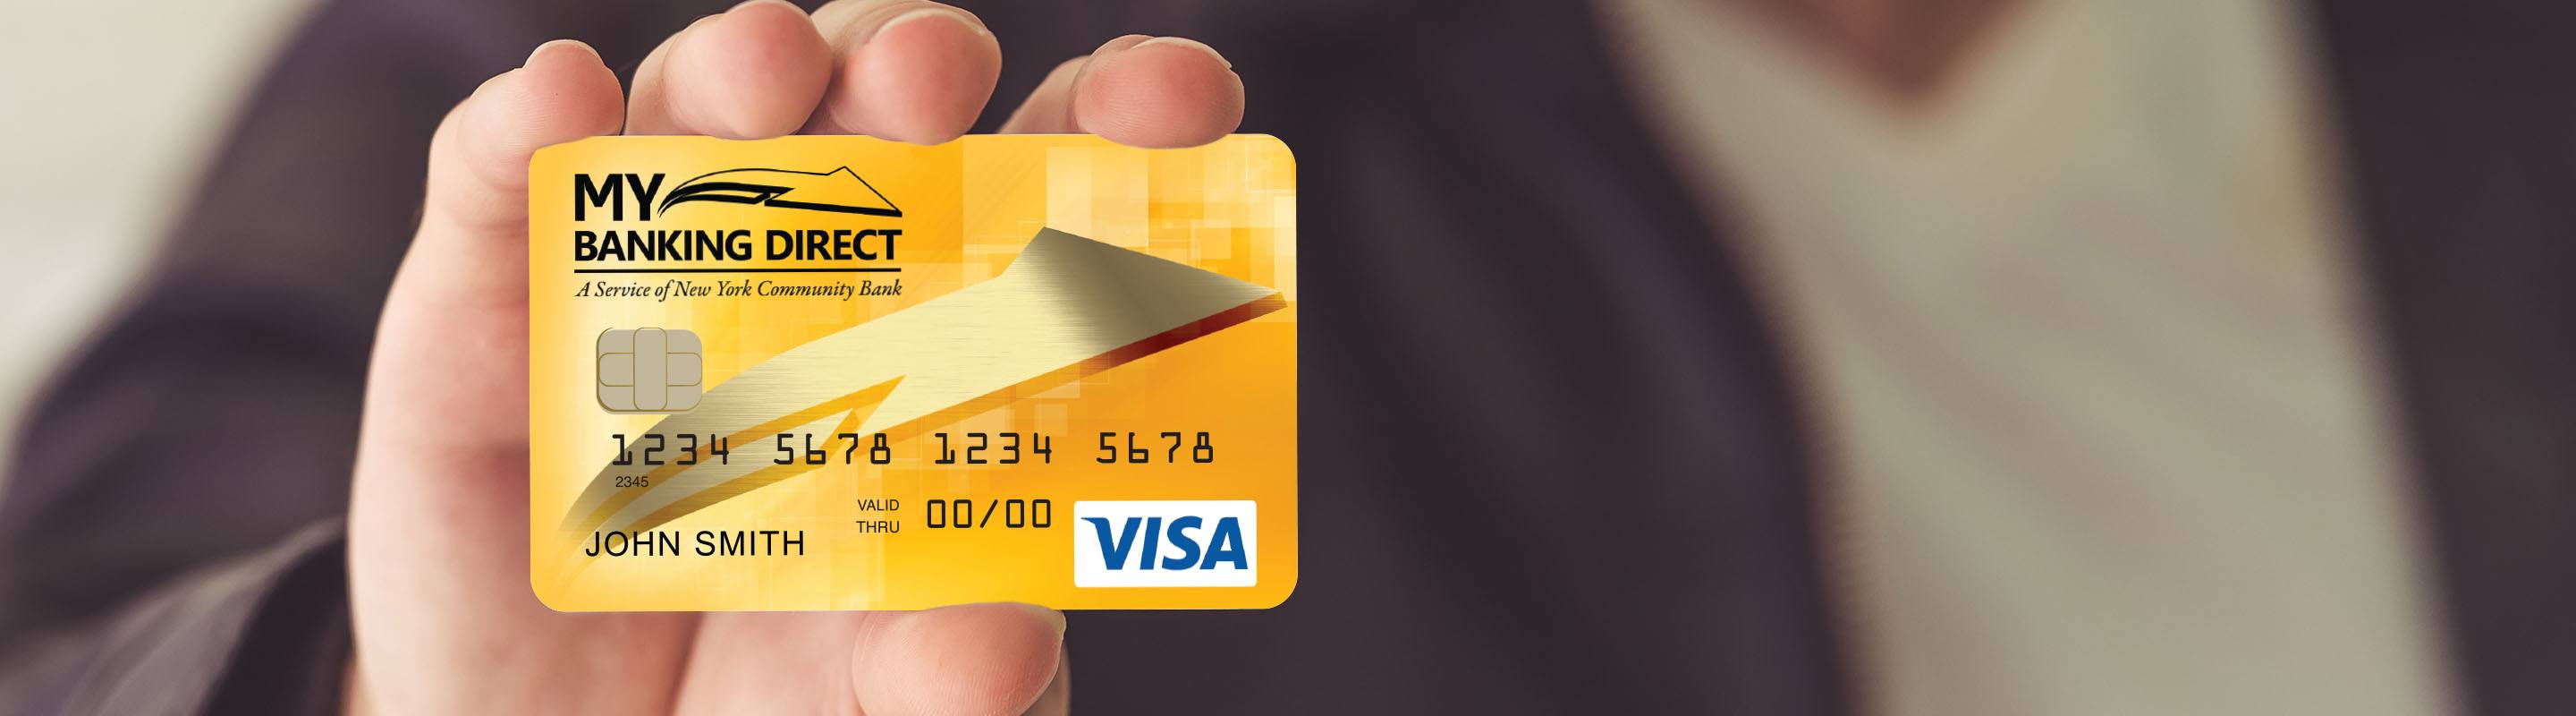 My Banking Direct Visa Debit Card